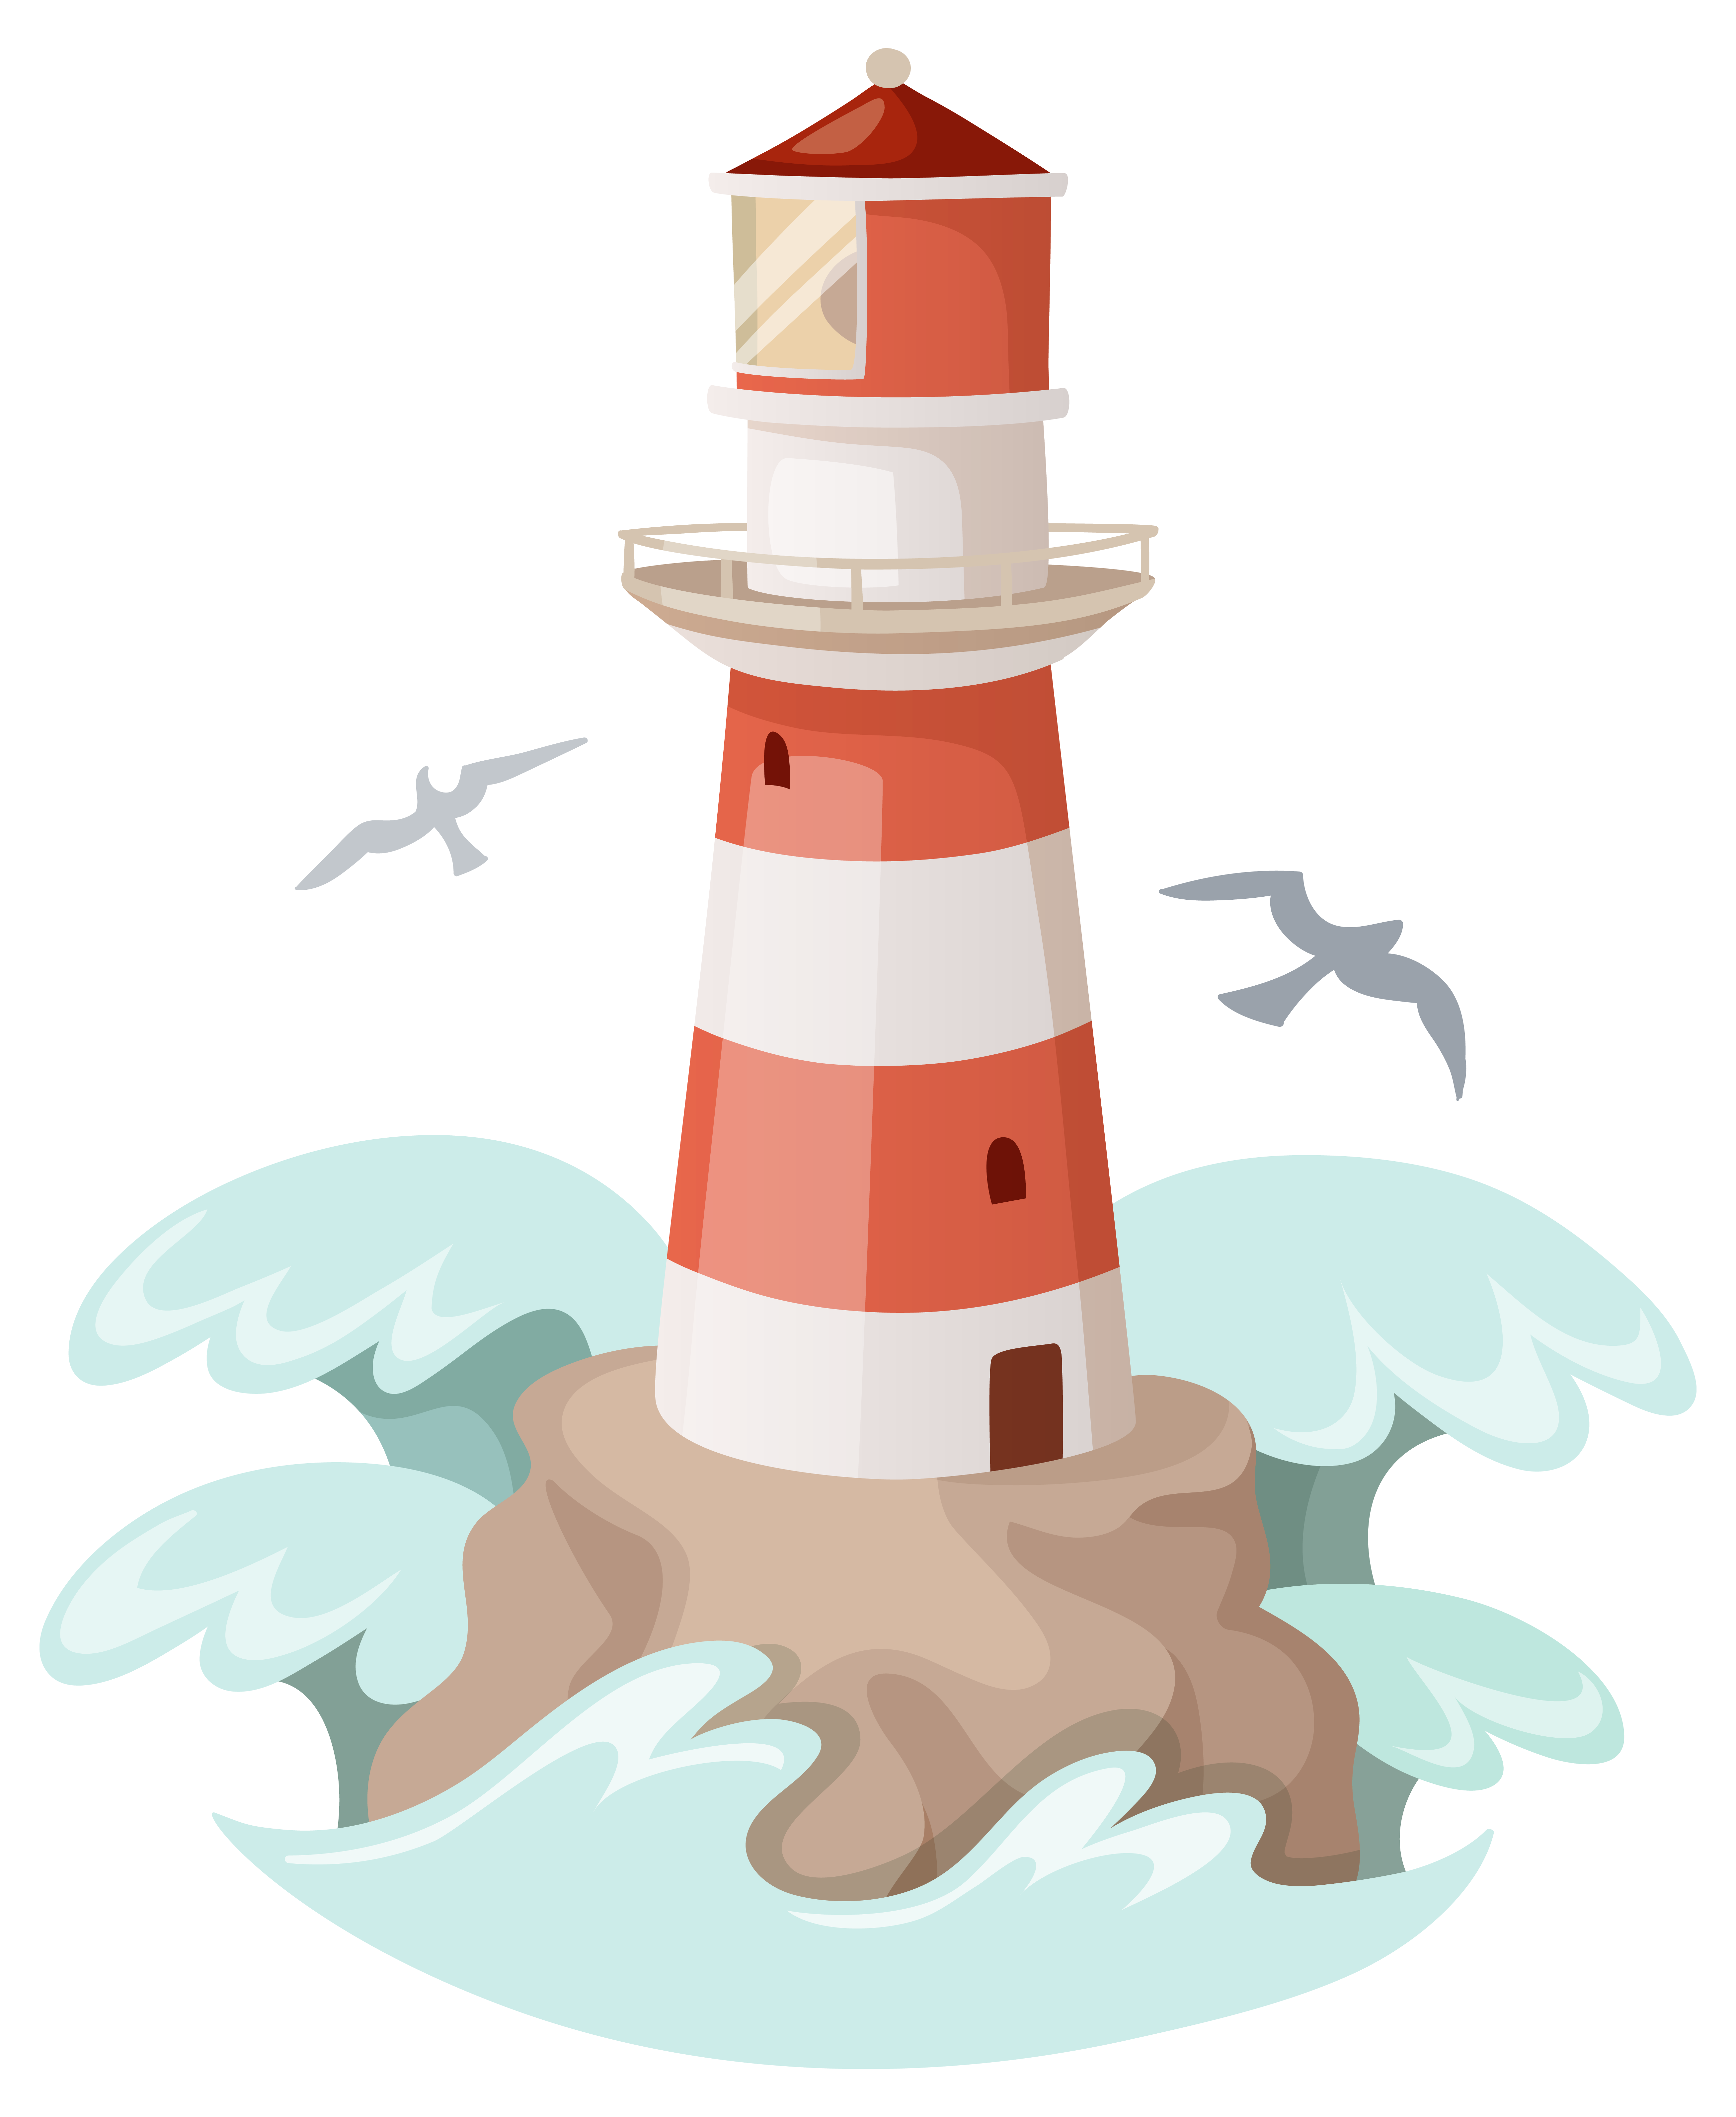 Lighthouse clipart #4, Download drawings